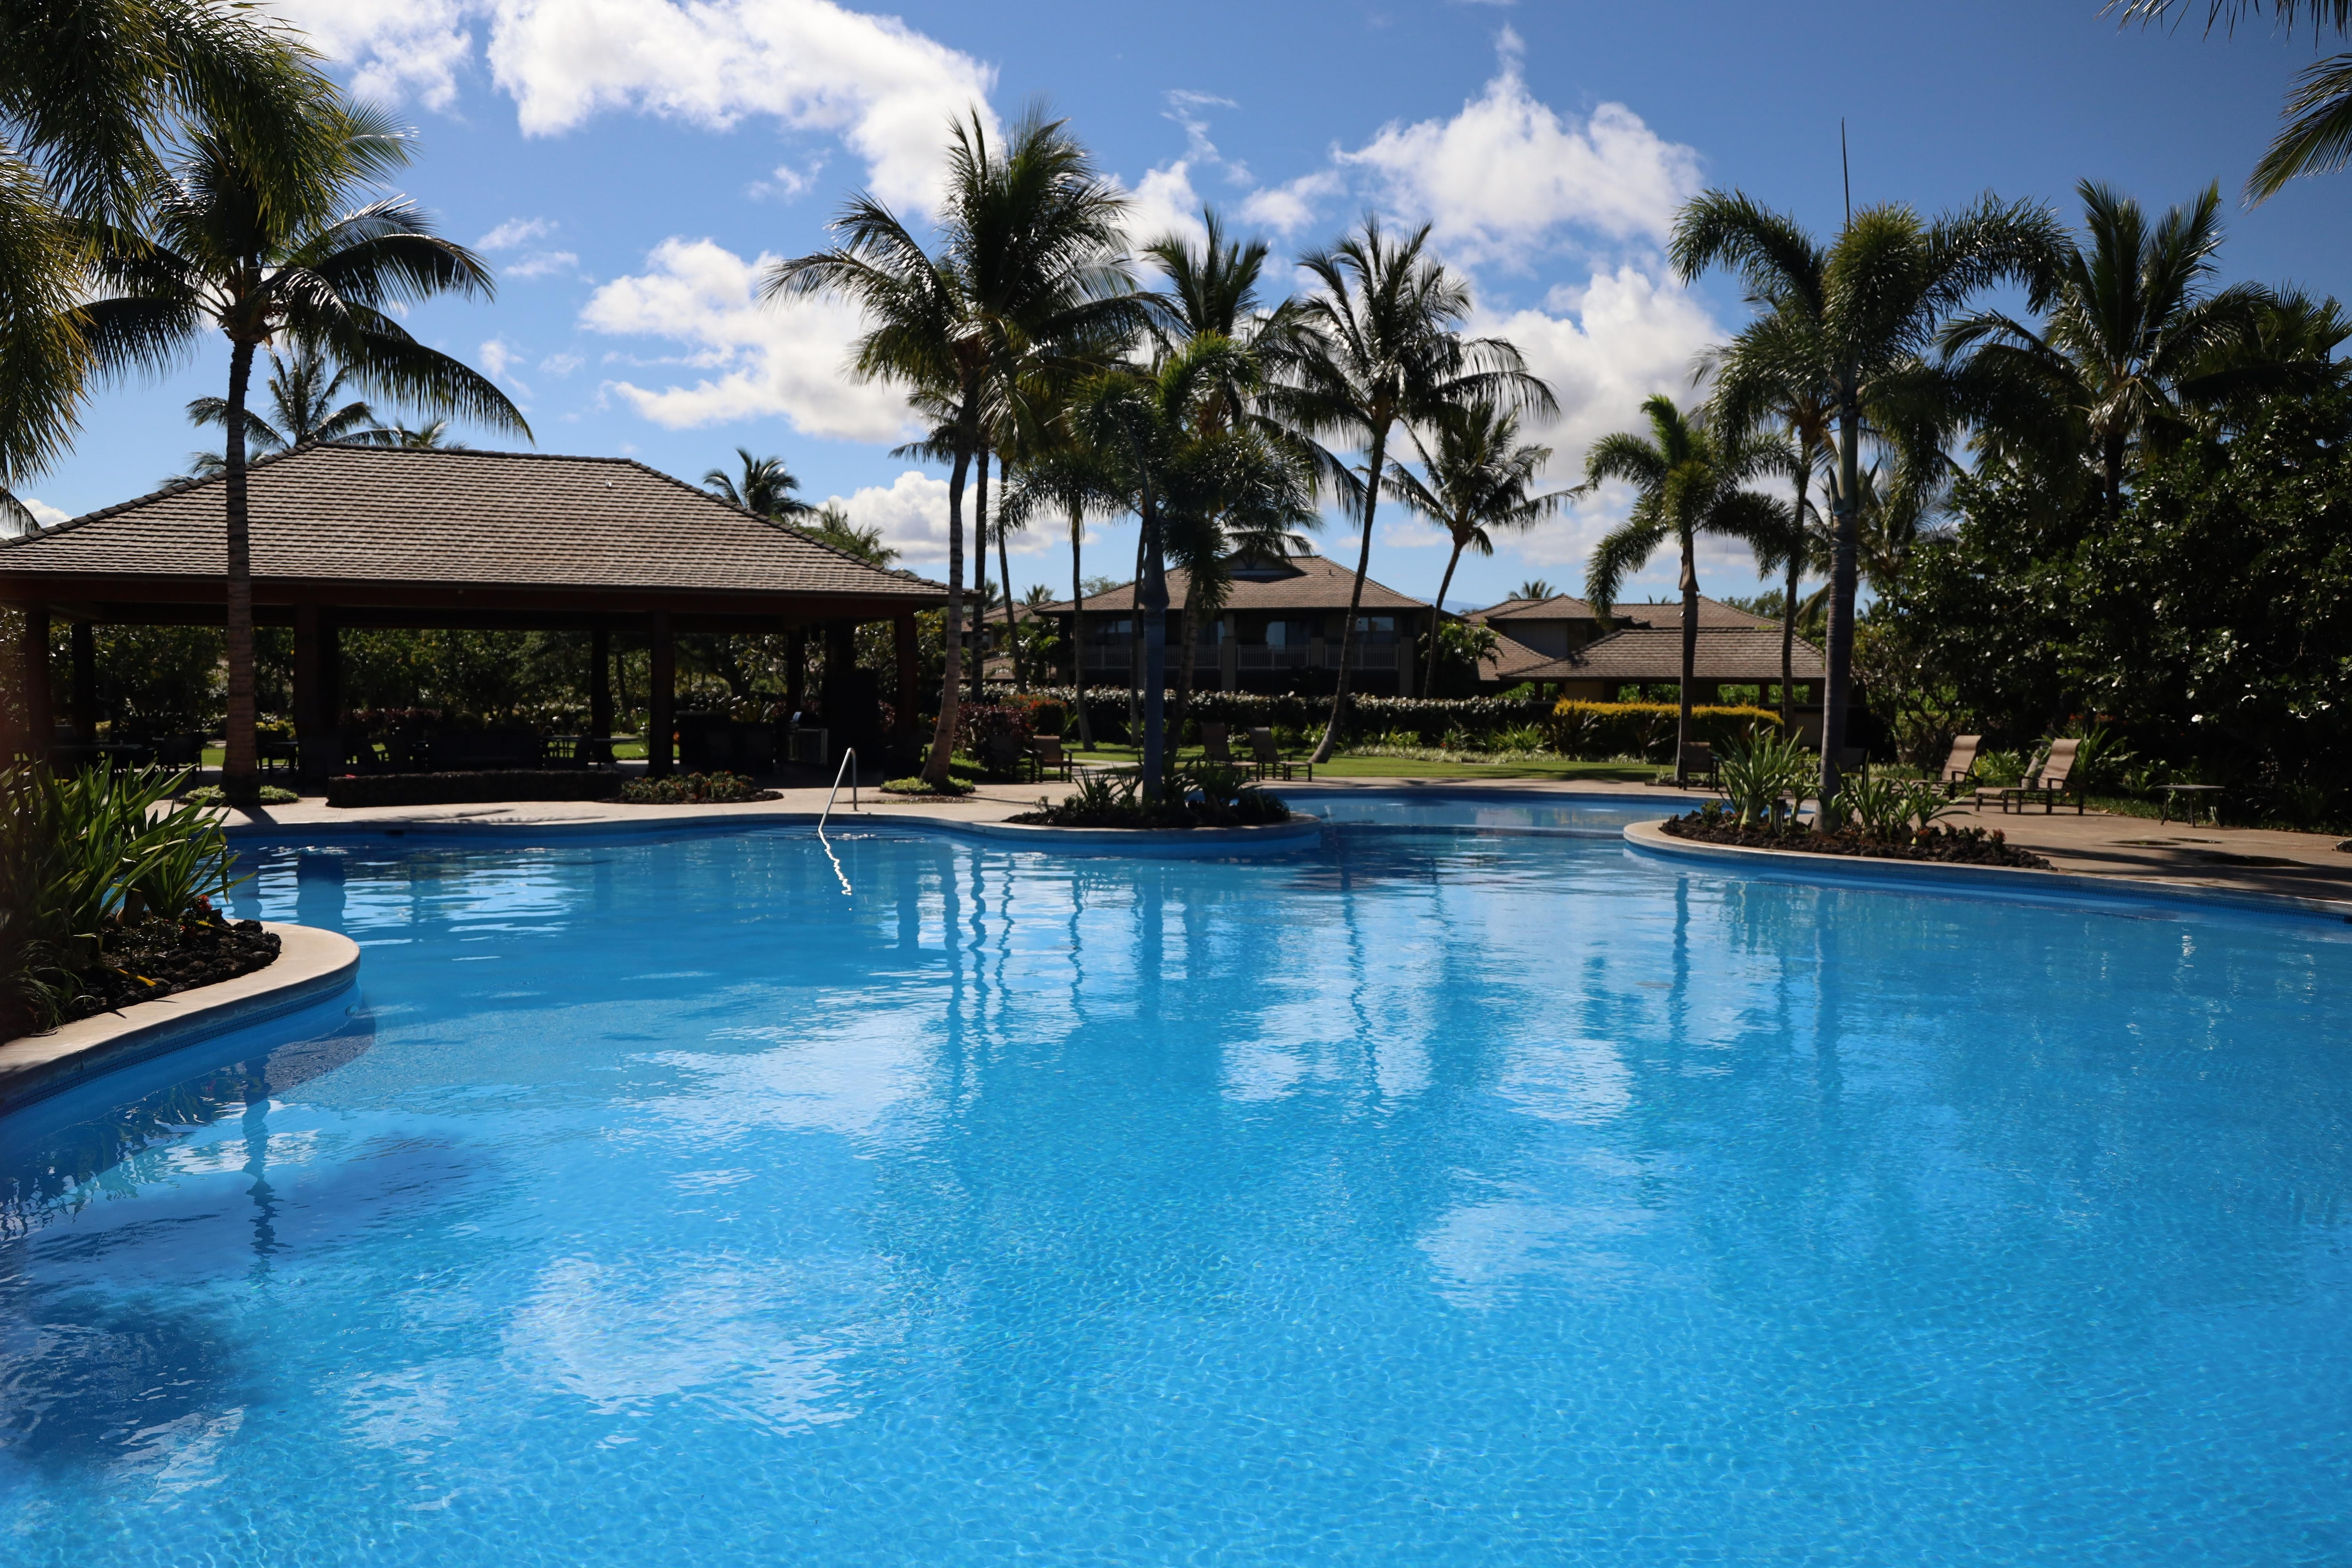 Large Ohana family lagoon pool at the Kulalani recreation center (one of two pools) - access included